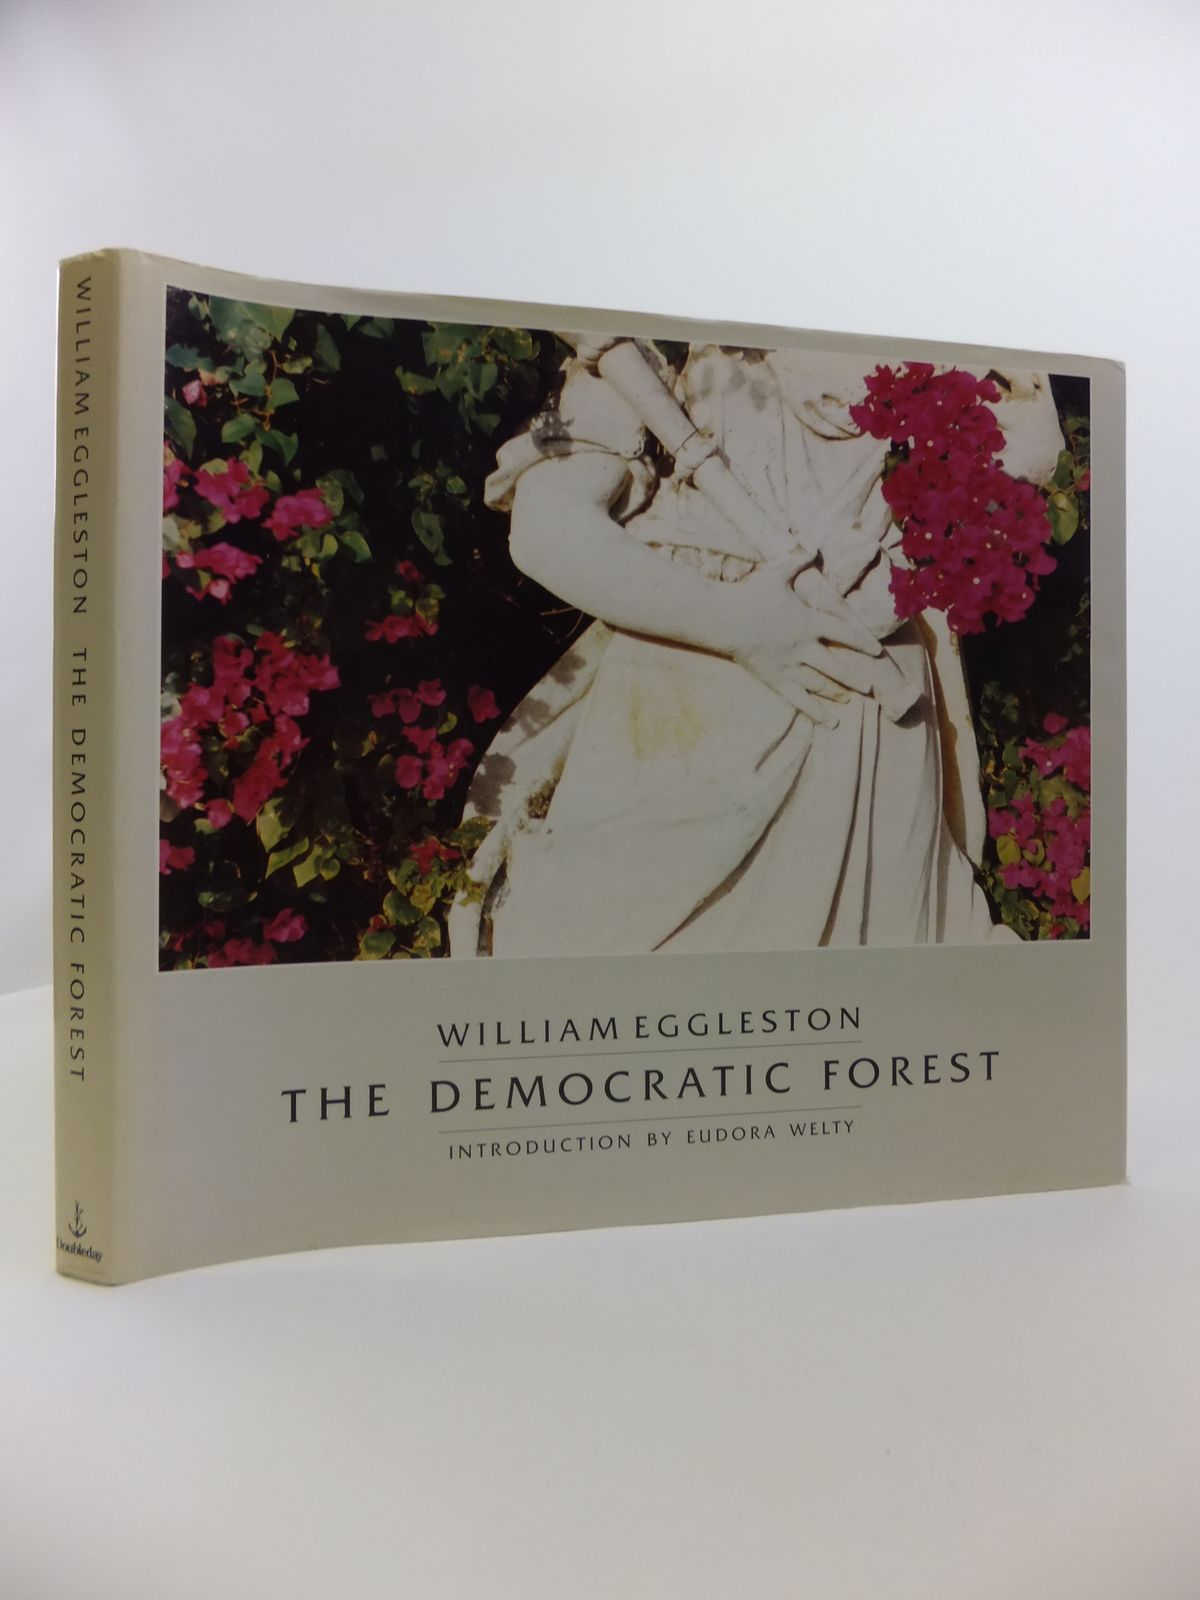 Photo of THE DEMOCRATIC FOREST written by Eggleston, William Welty, Eudora illustrated by Eggleston, William published by Doubleday (STOCK CODE: 1811901)  for sale by Stella & Rose's Books